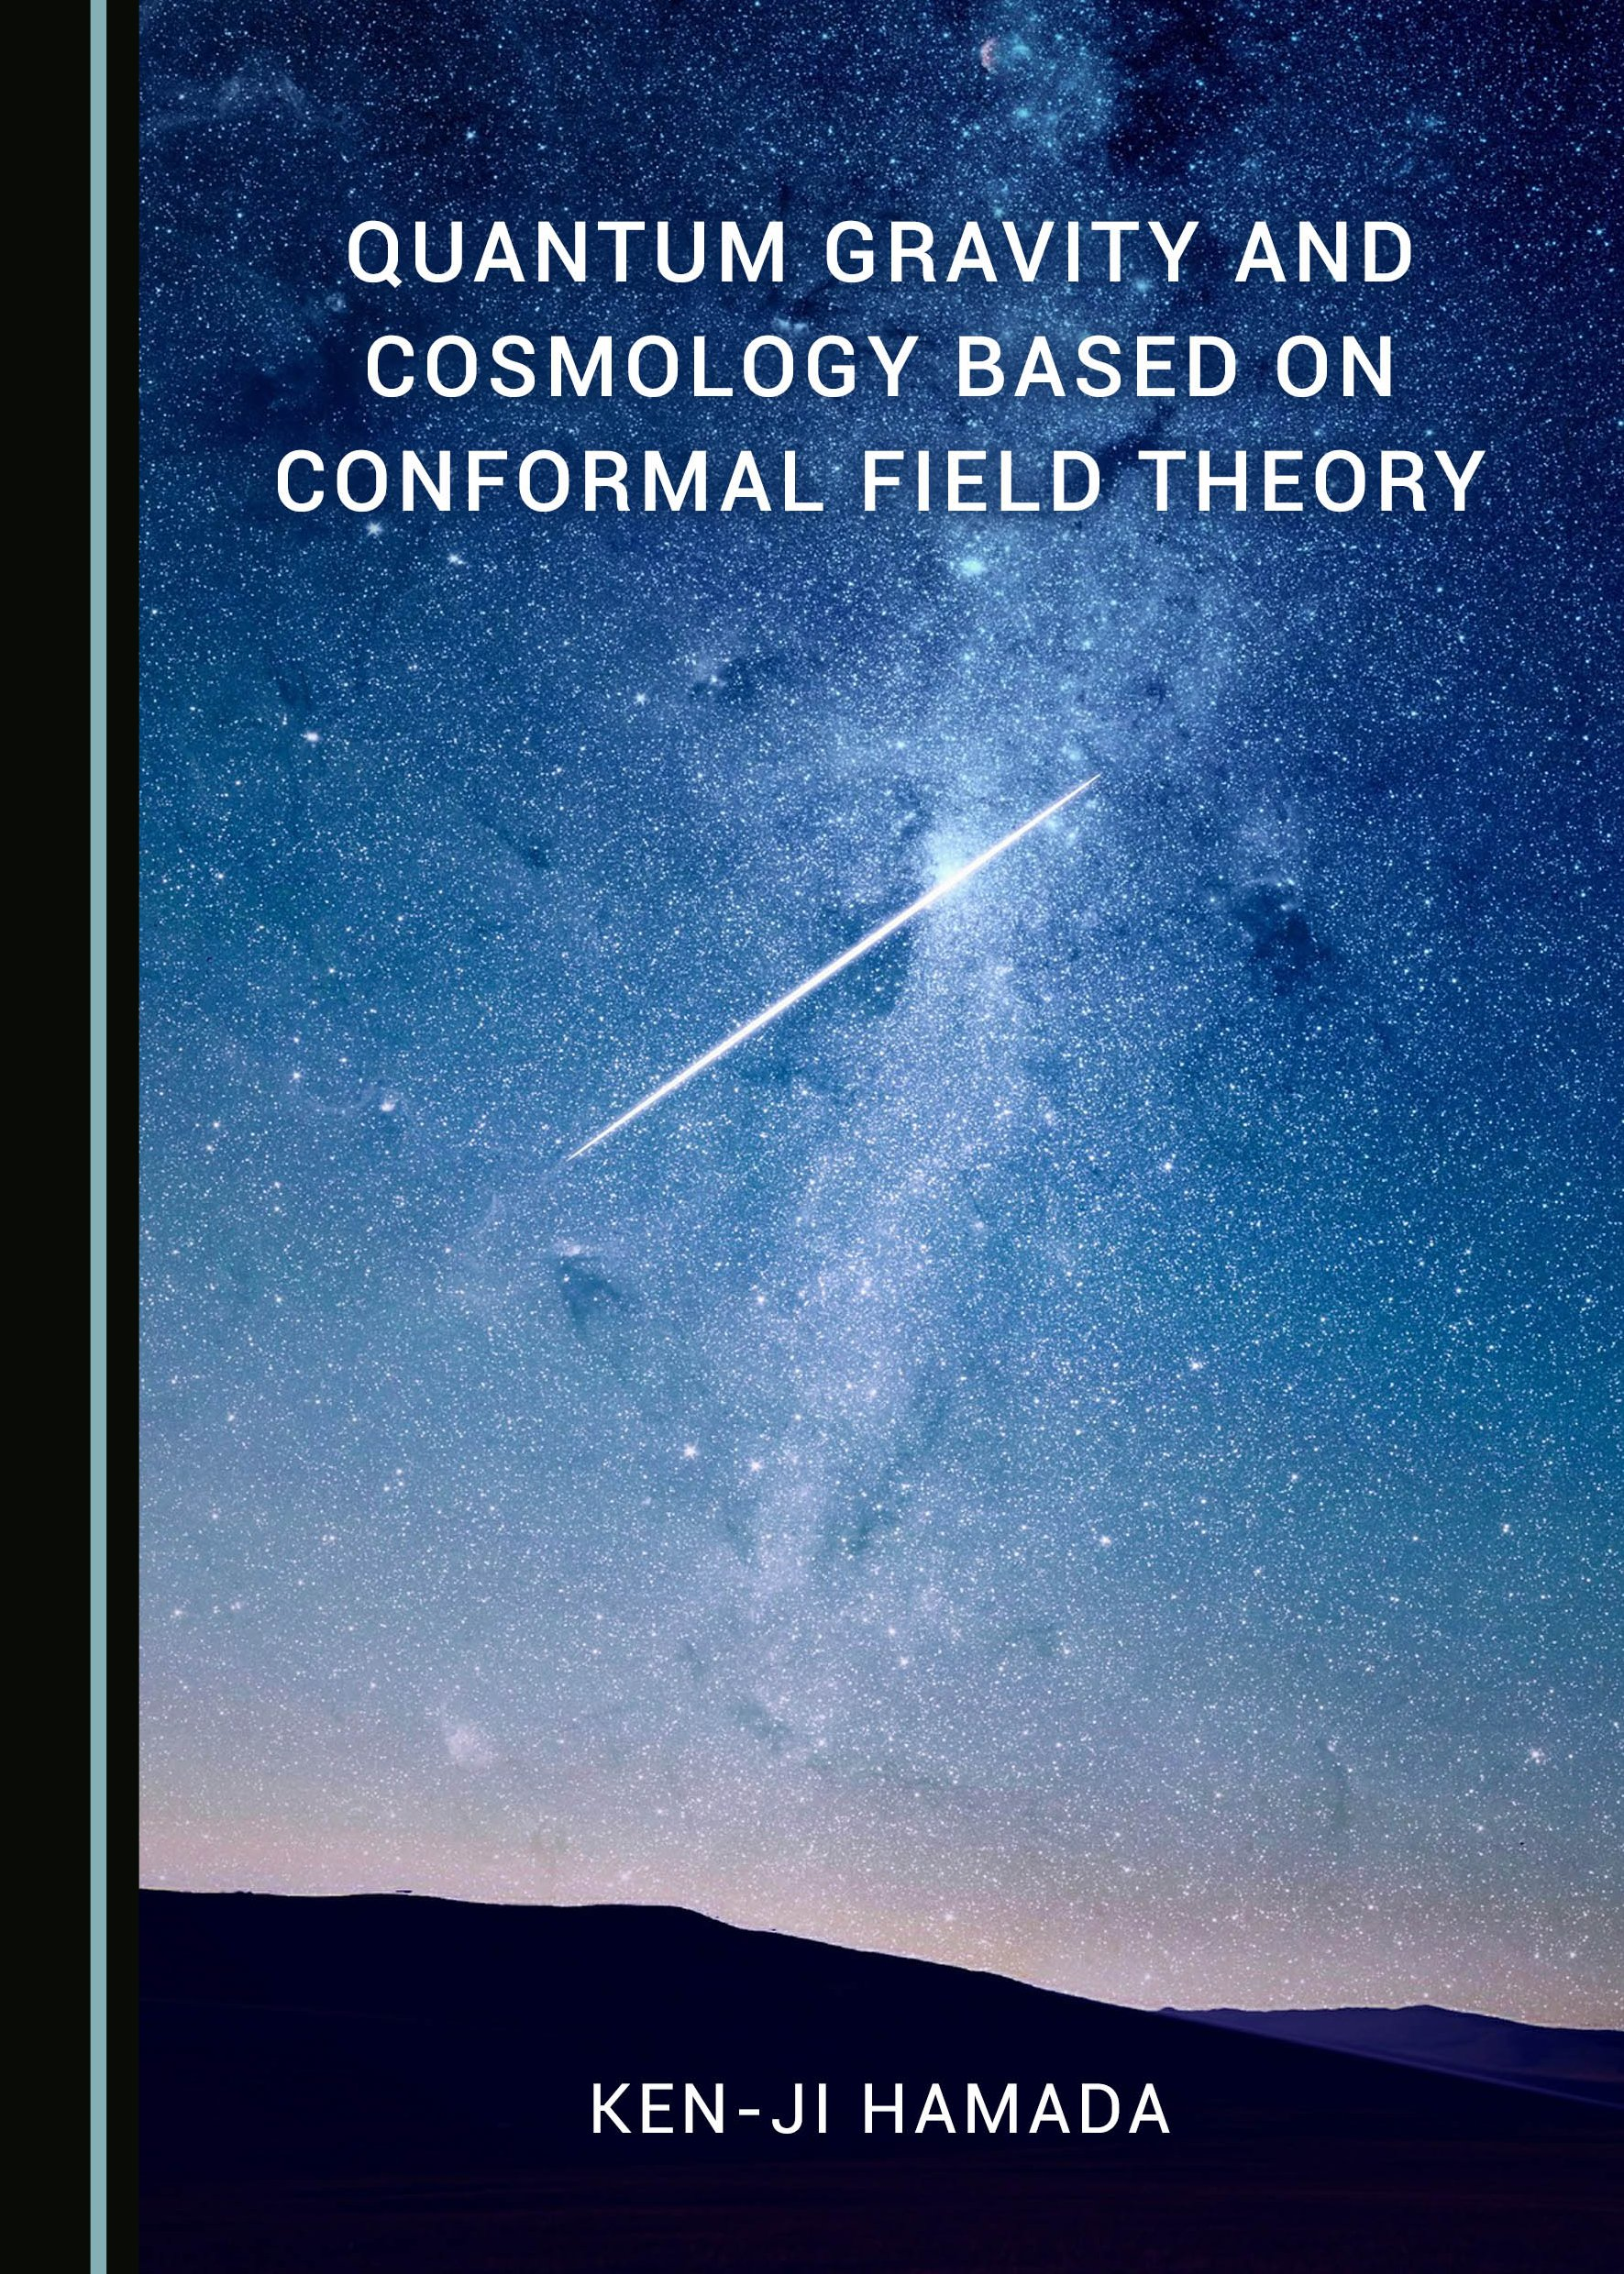 Quantum Gravity and Cosmology Based on Conformal Field Theory